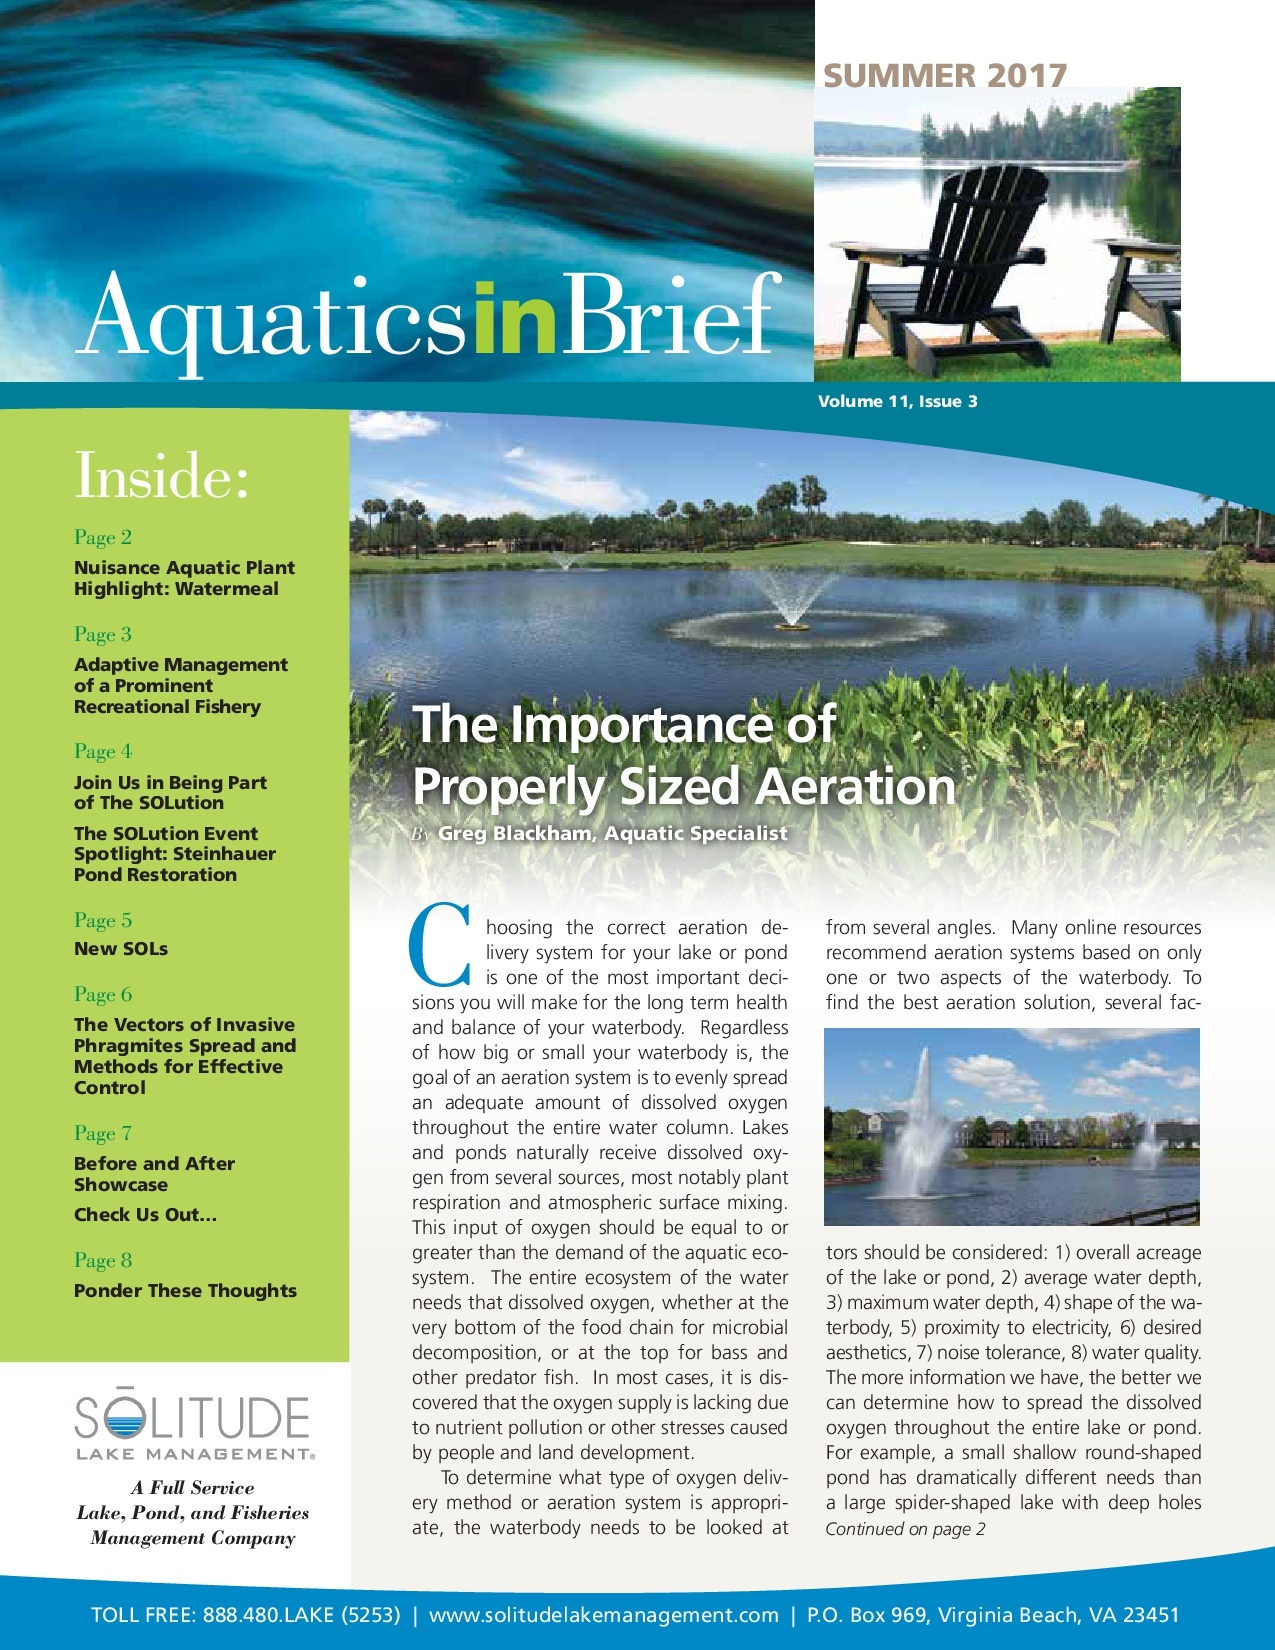 https://cdn2.hubspot.net/hubfs/227988/43_SOLitude_lake_management_AquaticsInBrief_newsletter_07.2017_Summer.pdf